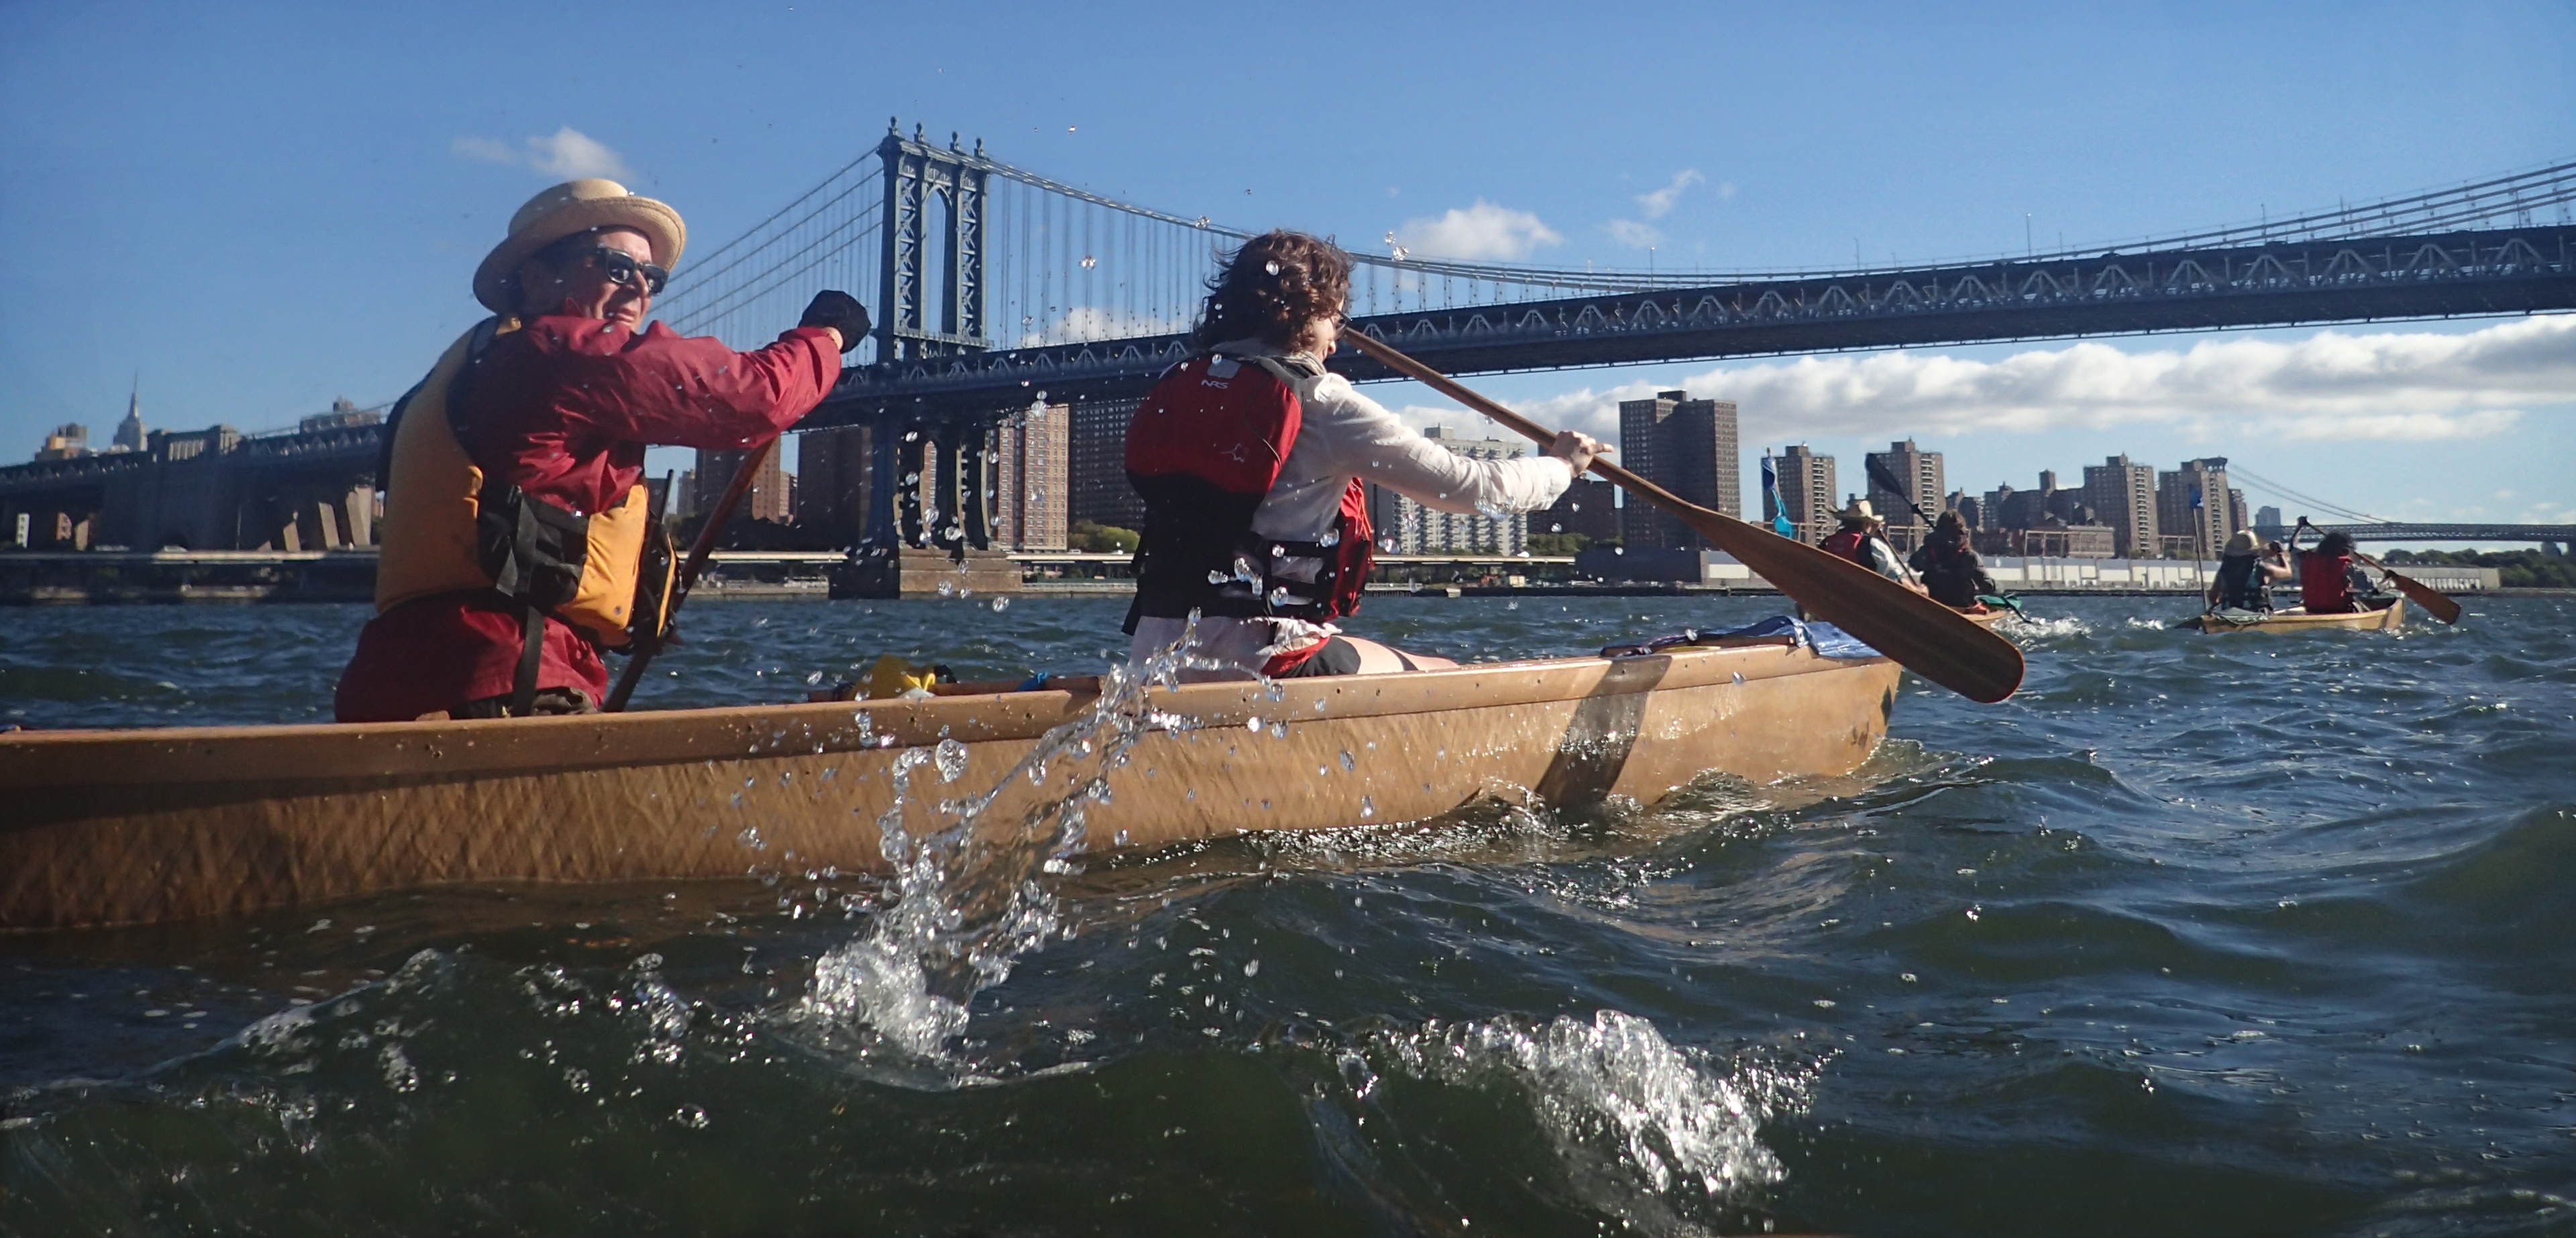 In 2014, members of Mare Liberum circumnavigated Manhattan in paper canoes to raise awareness of climate change. Photo by Sunita Prasad